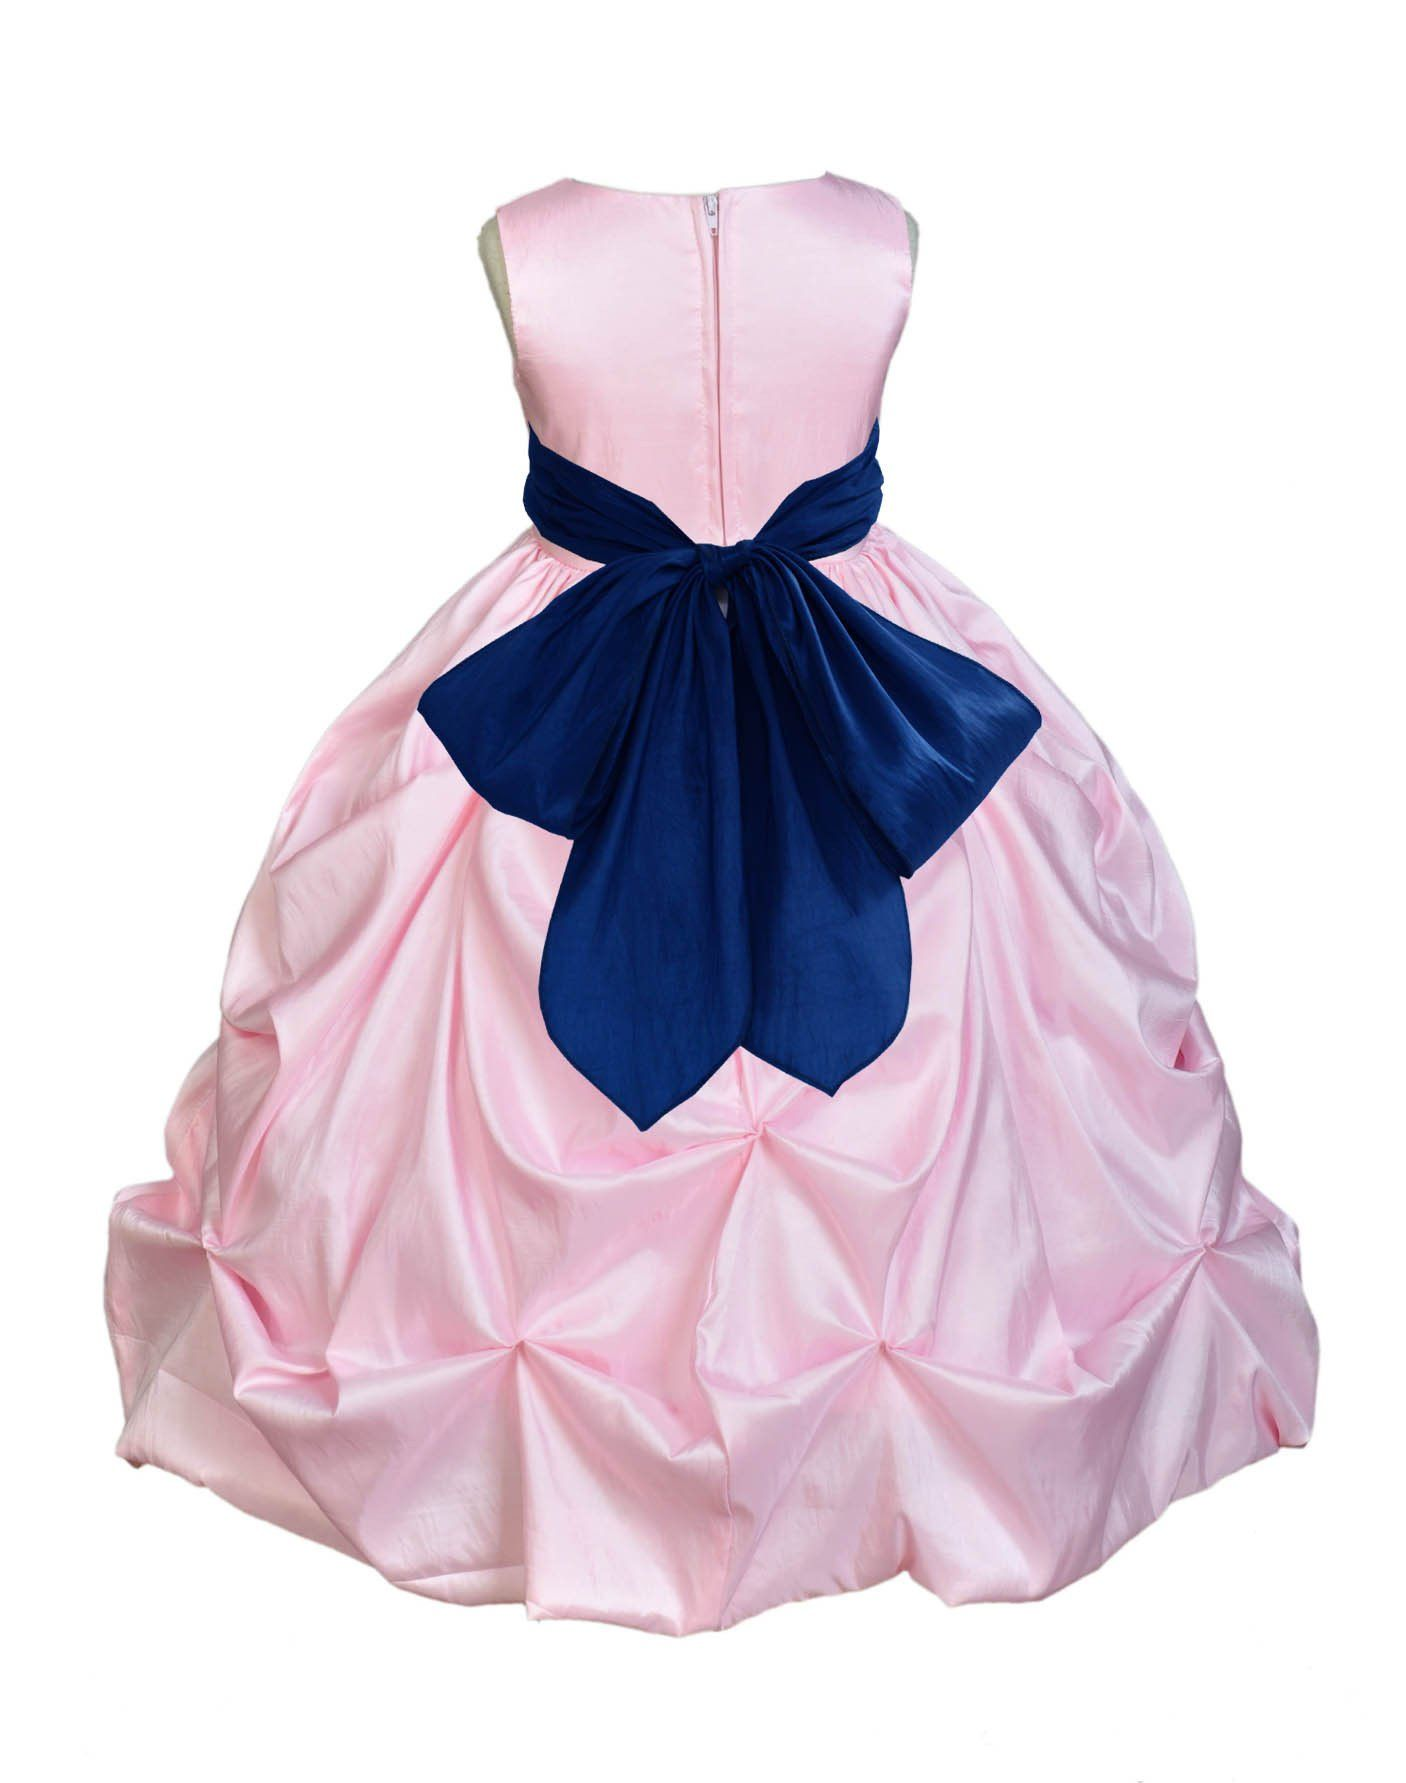 Pink bubble taffeta formal bridesmaid beauty pageant special